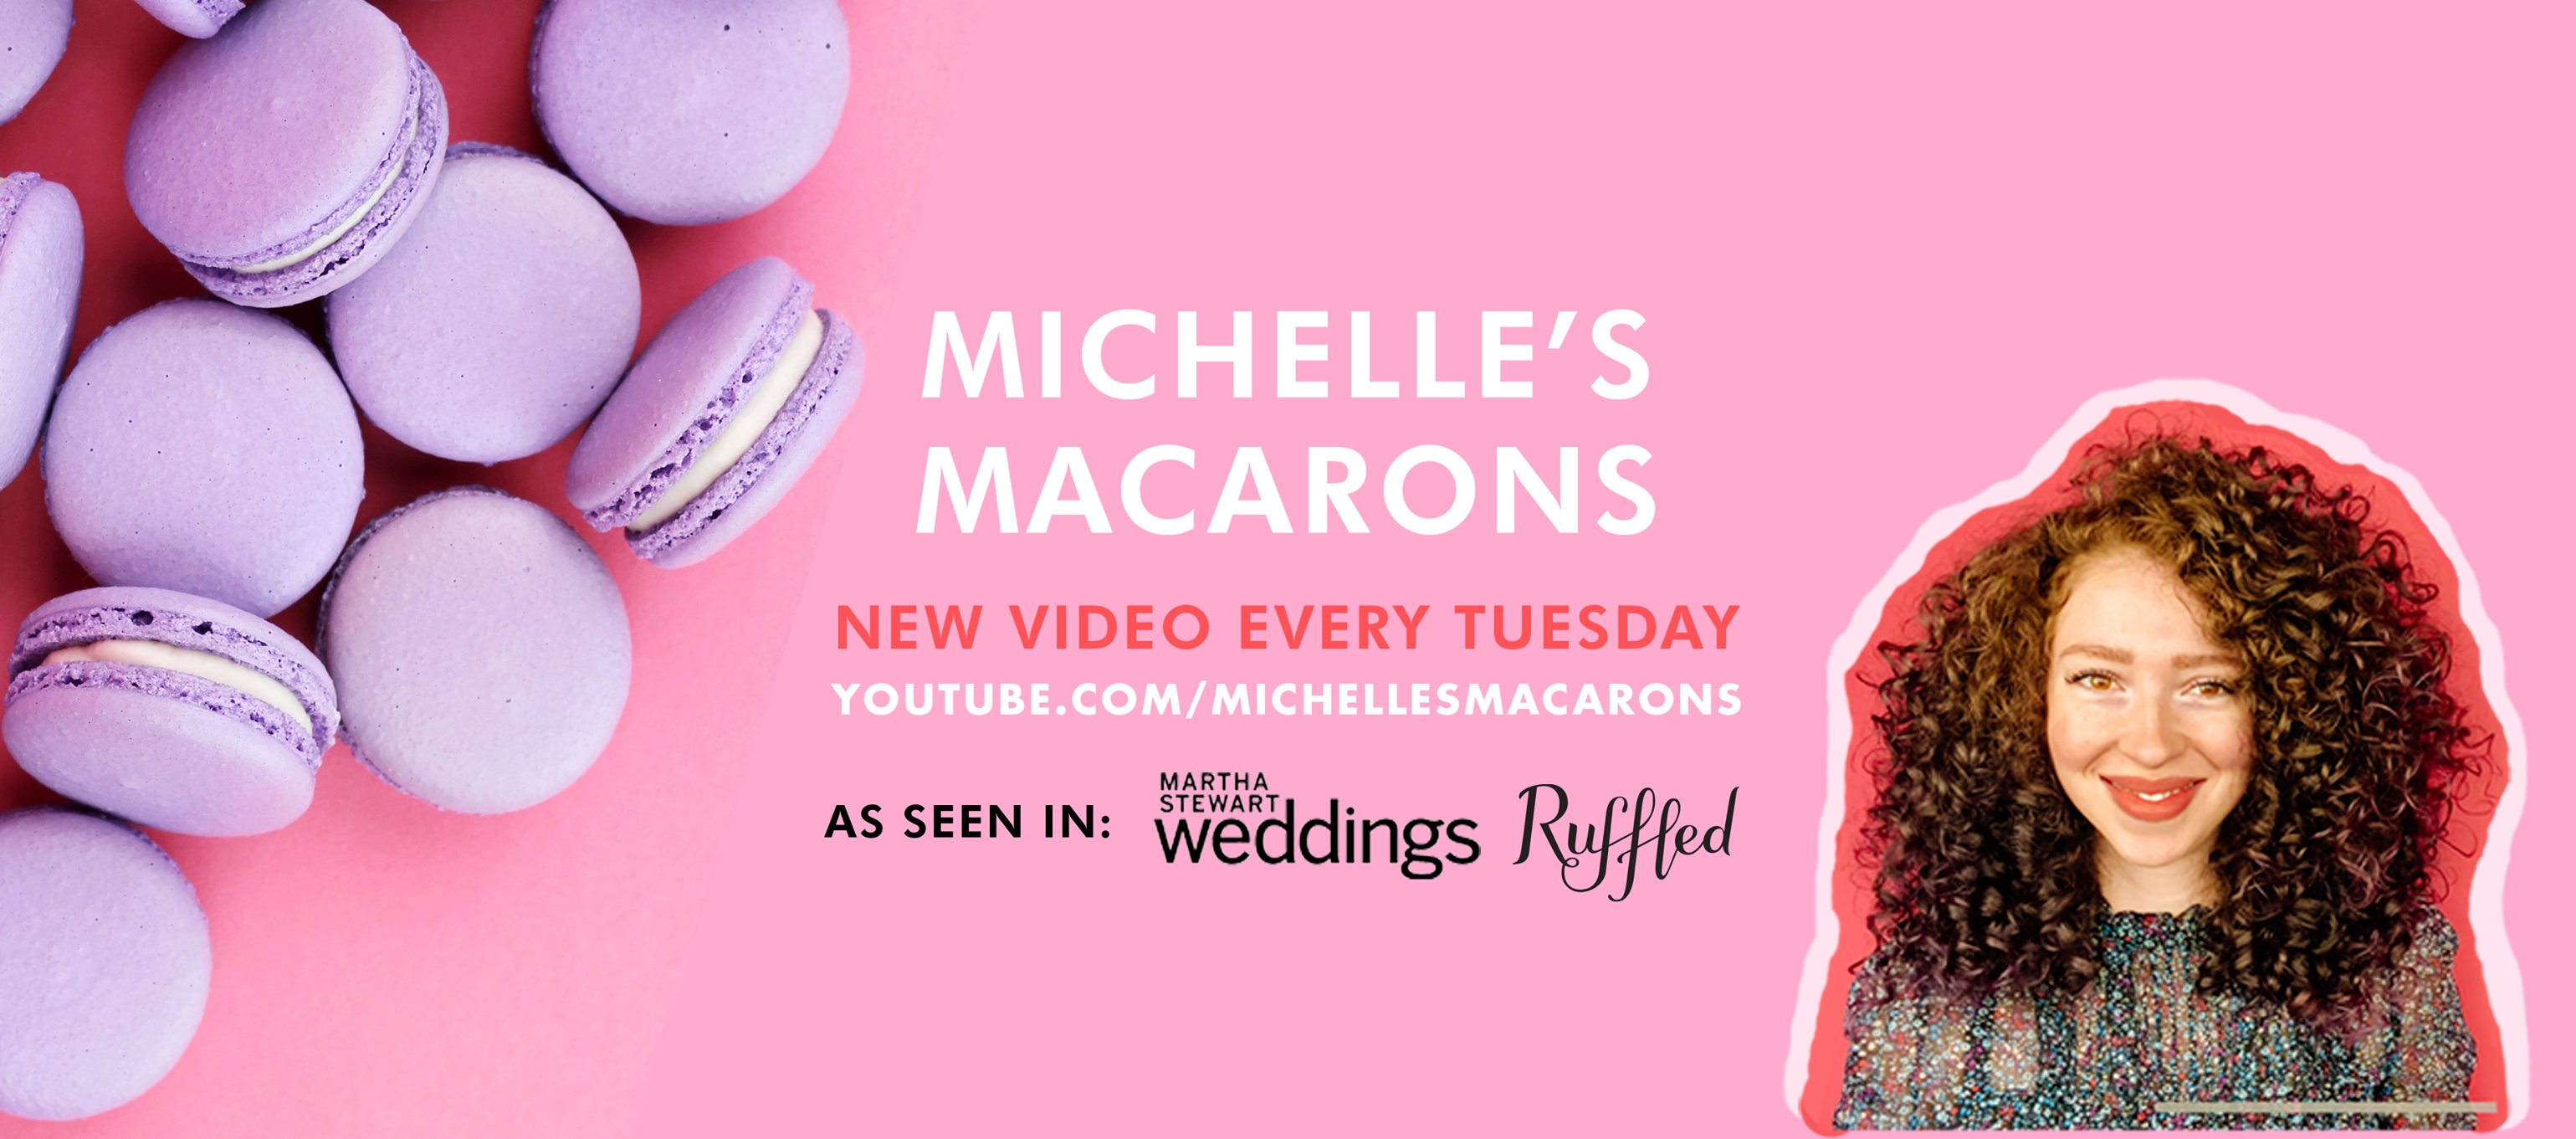 Michelle's Macarons